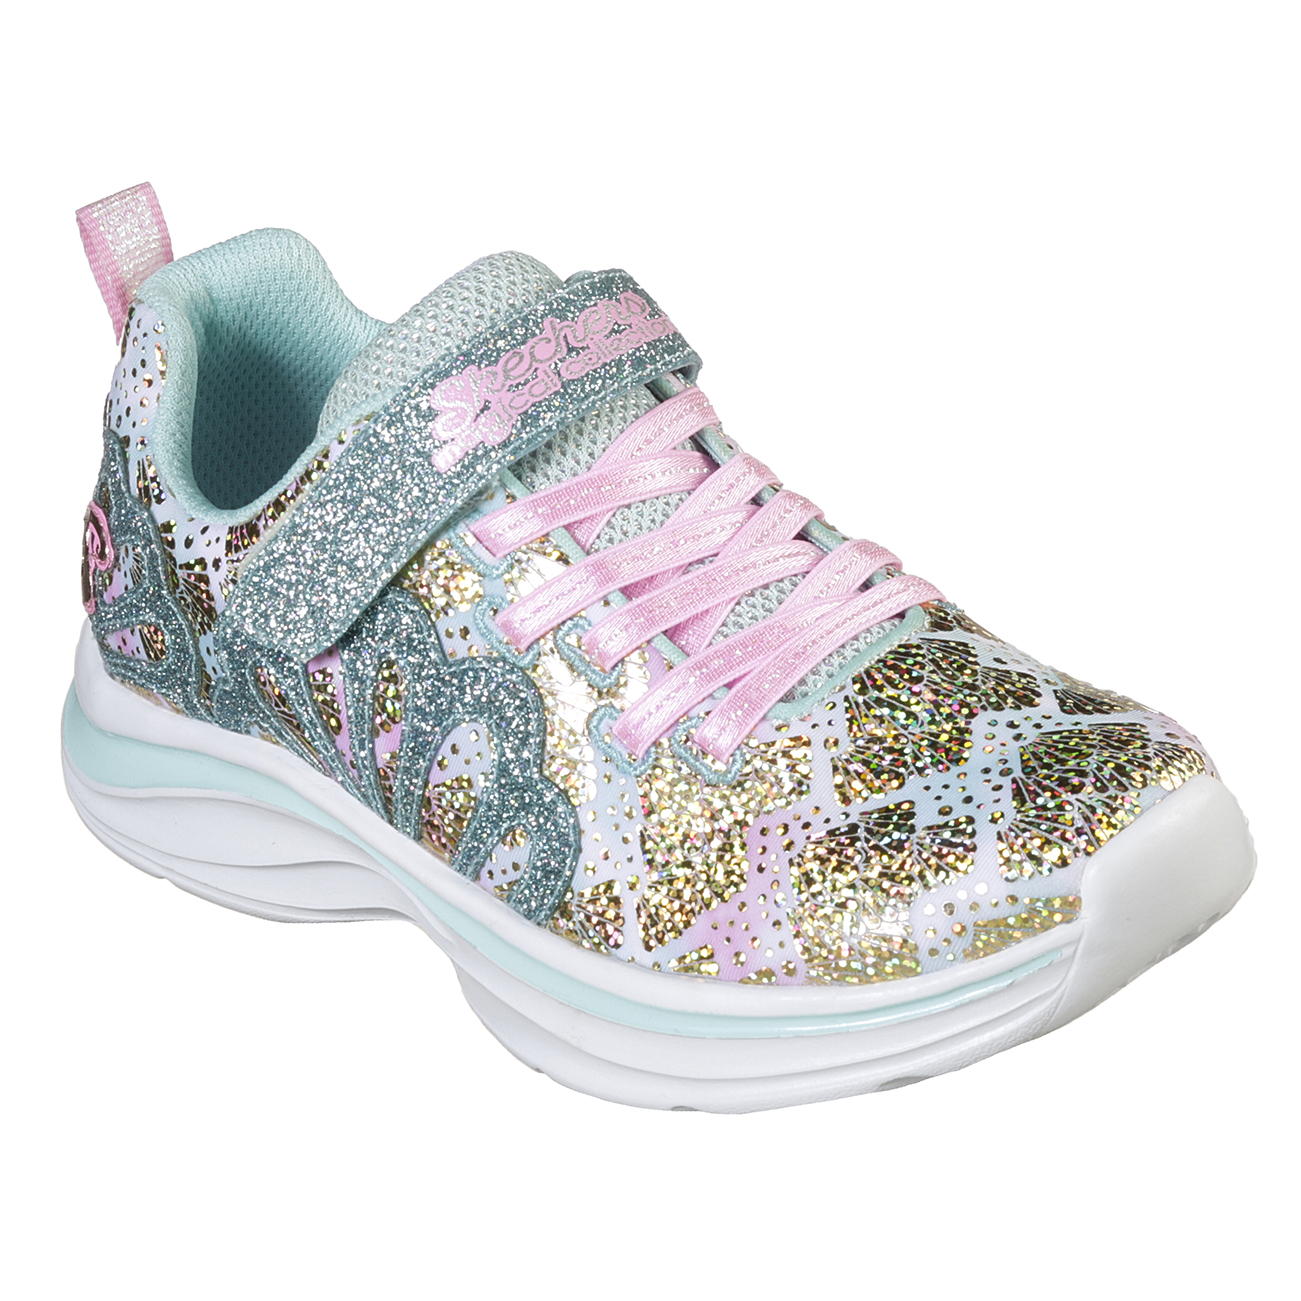 Kids Girls Skechers Double Dreams Mermaid Music